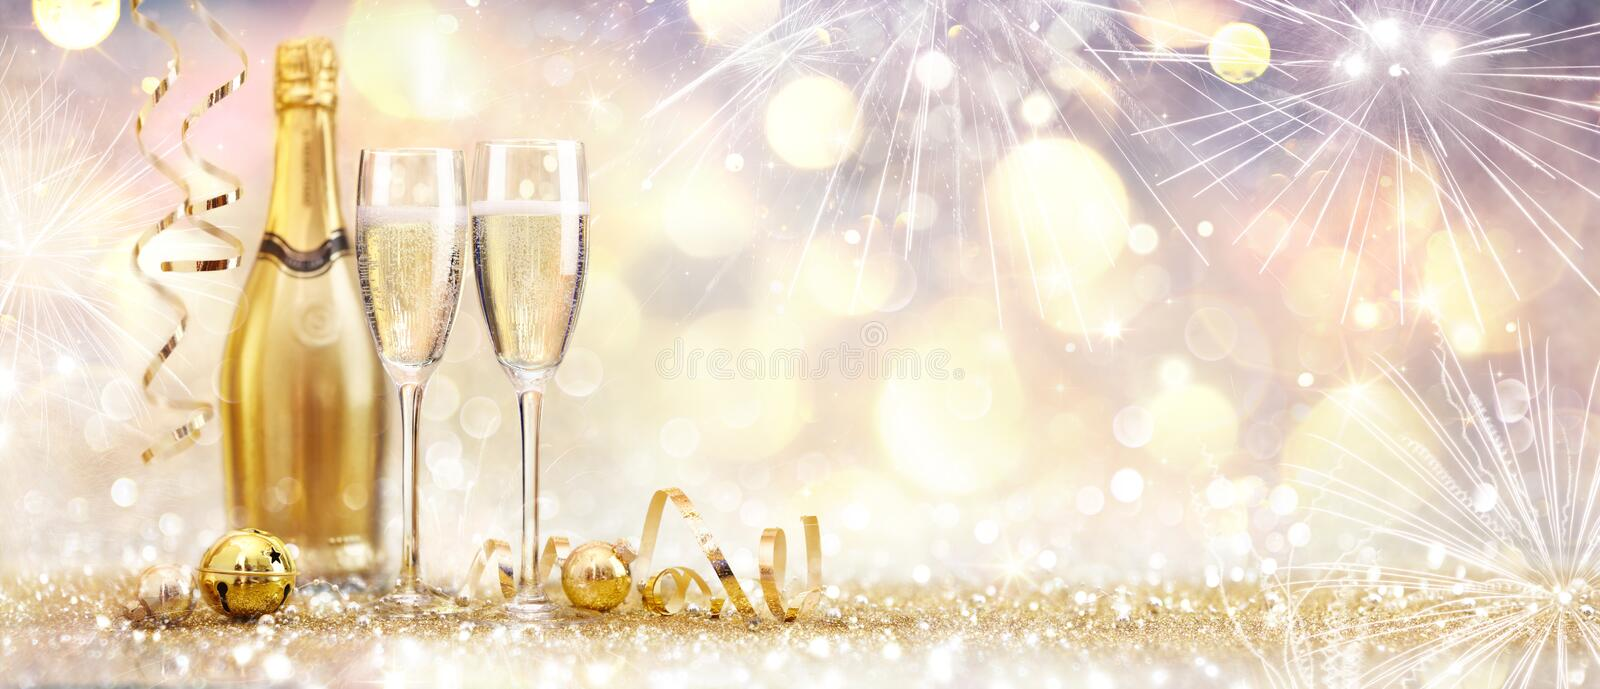 New Year Celebration With Champagne And Fireworks royalty free stock photos